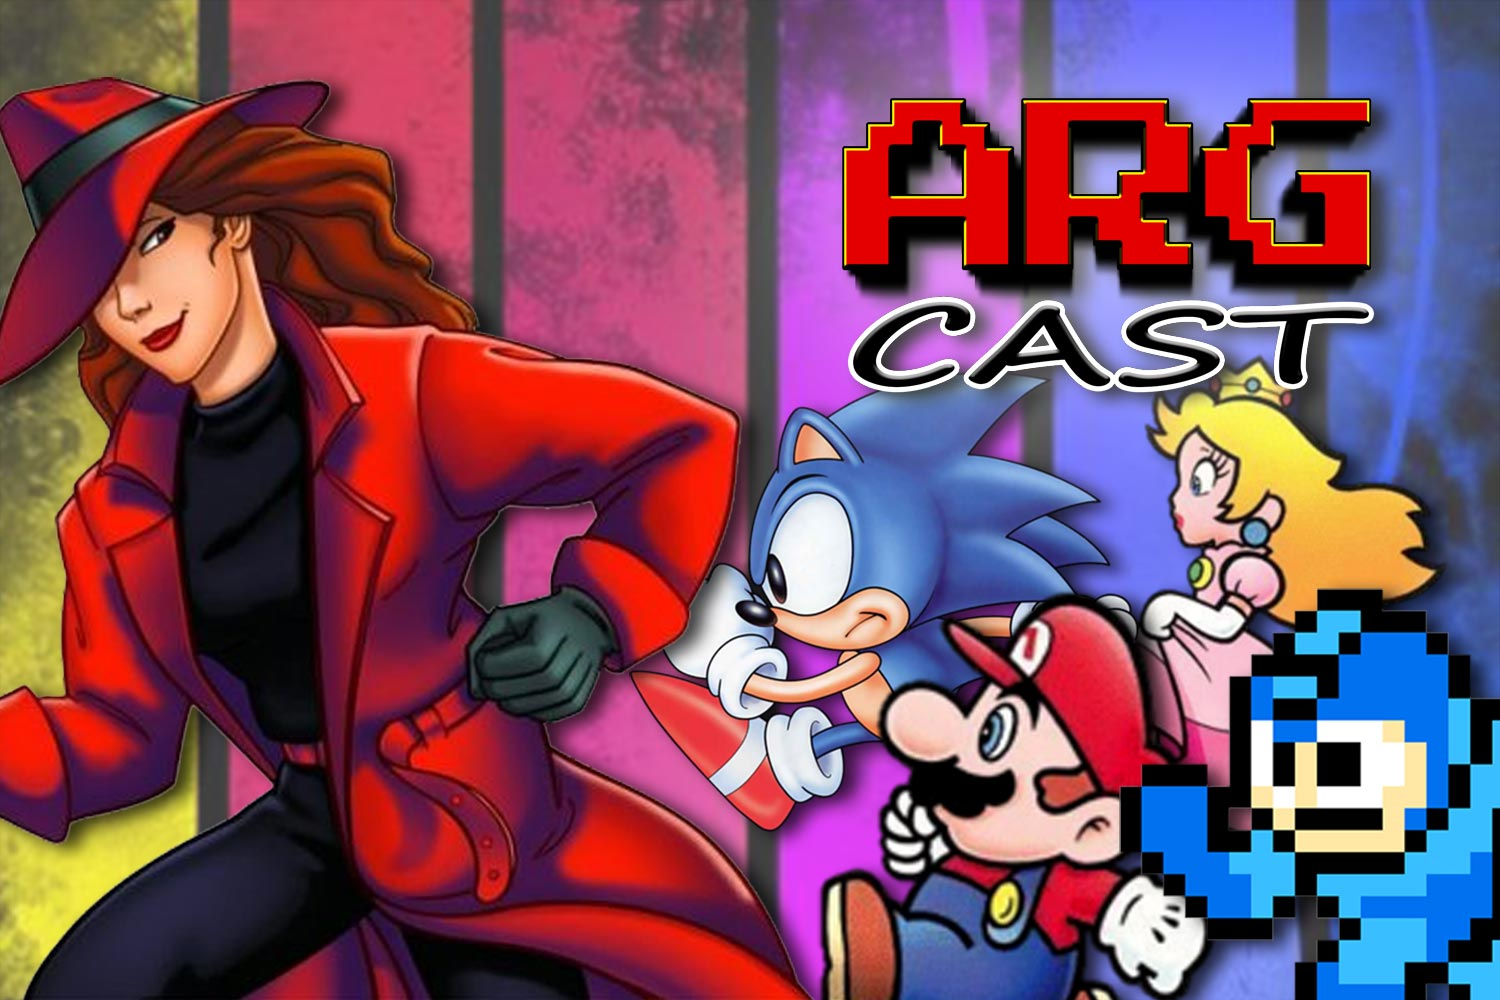 ARGcast #178: Our Earliest Gaming Memories w/ JJ, Tay, and Ash